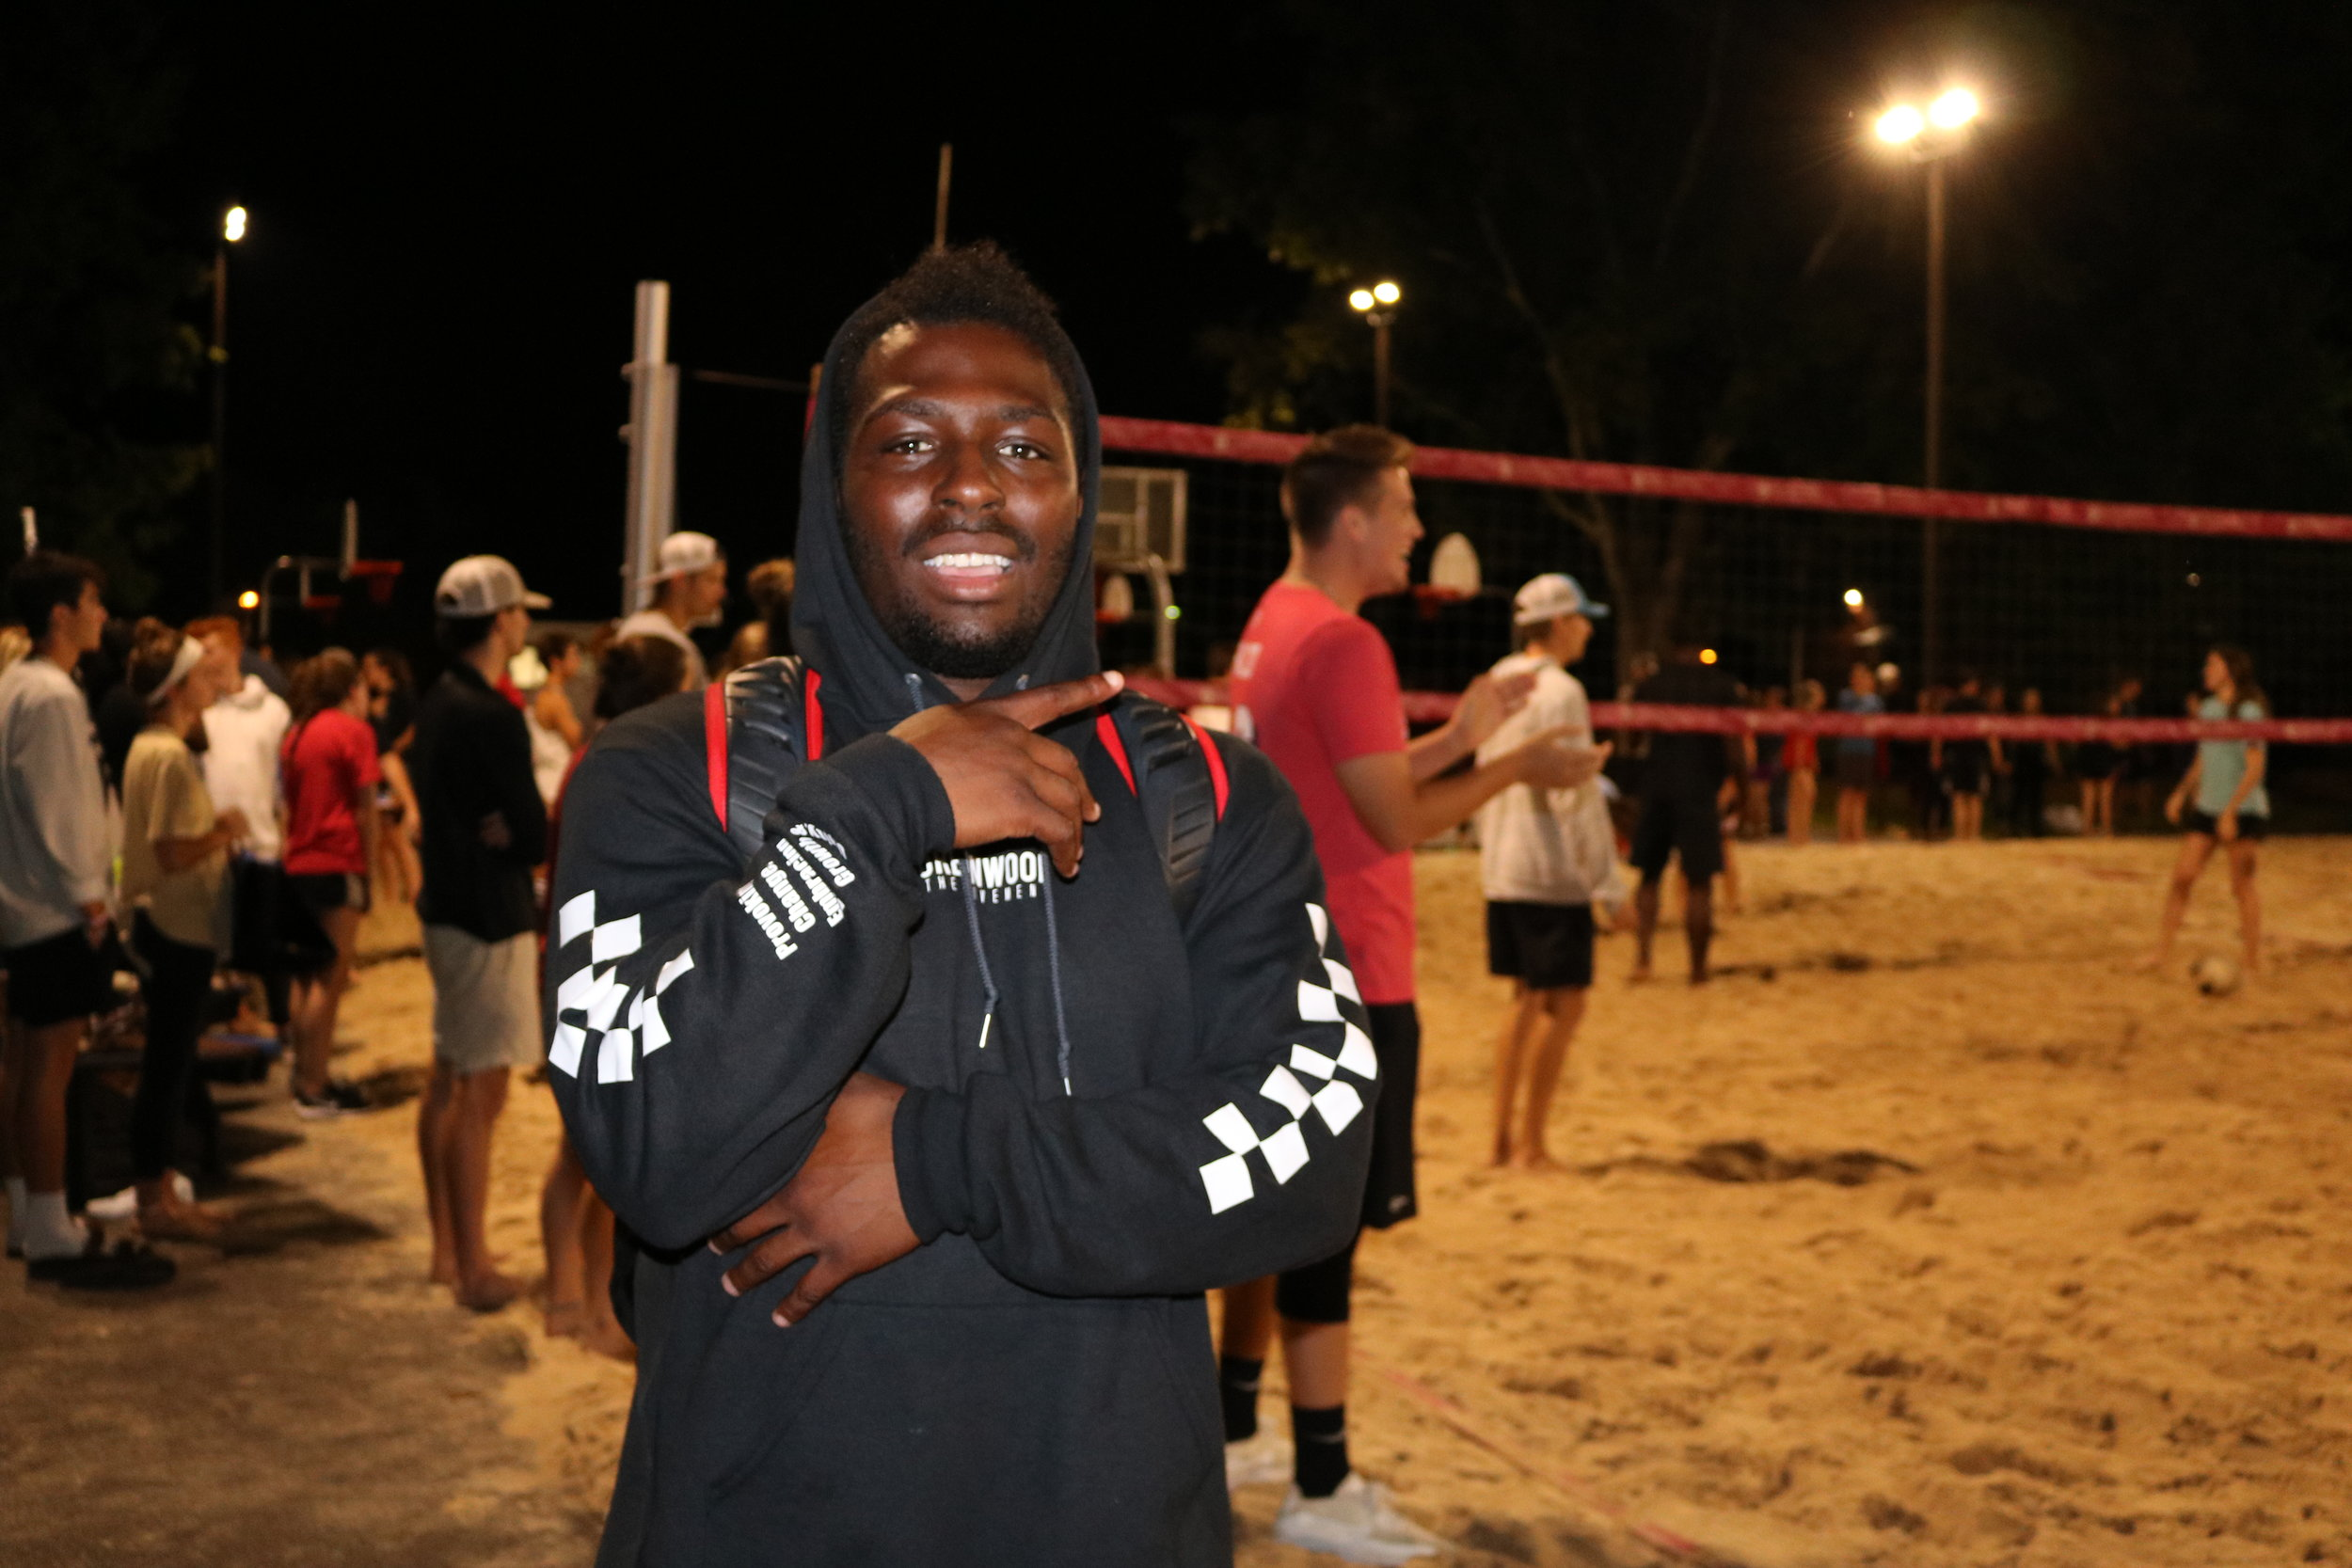 Junior, Emmanuel Harrison, is on the volleyball courts playing with Urbanwood and is pumped for the tournament on Monday night.